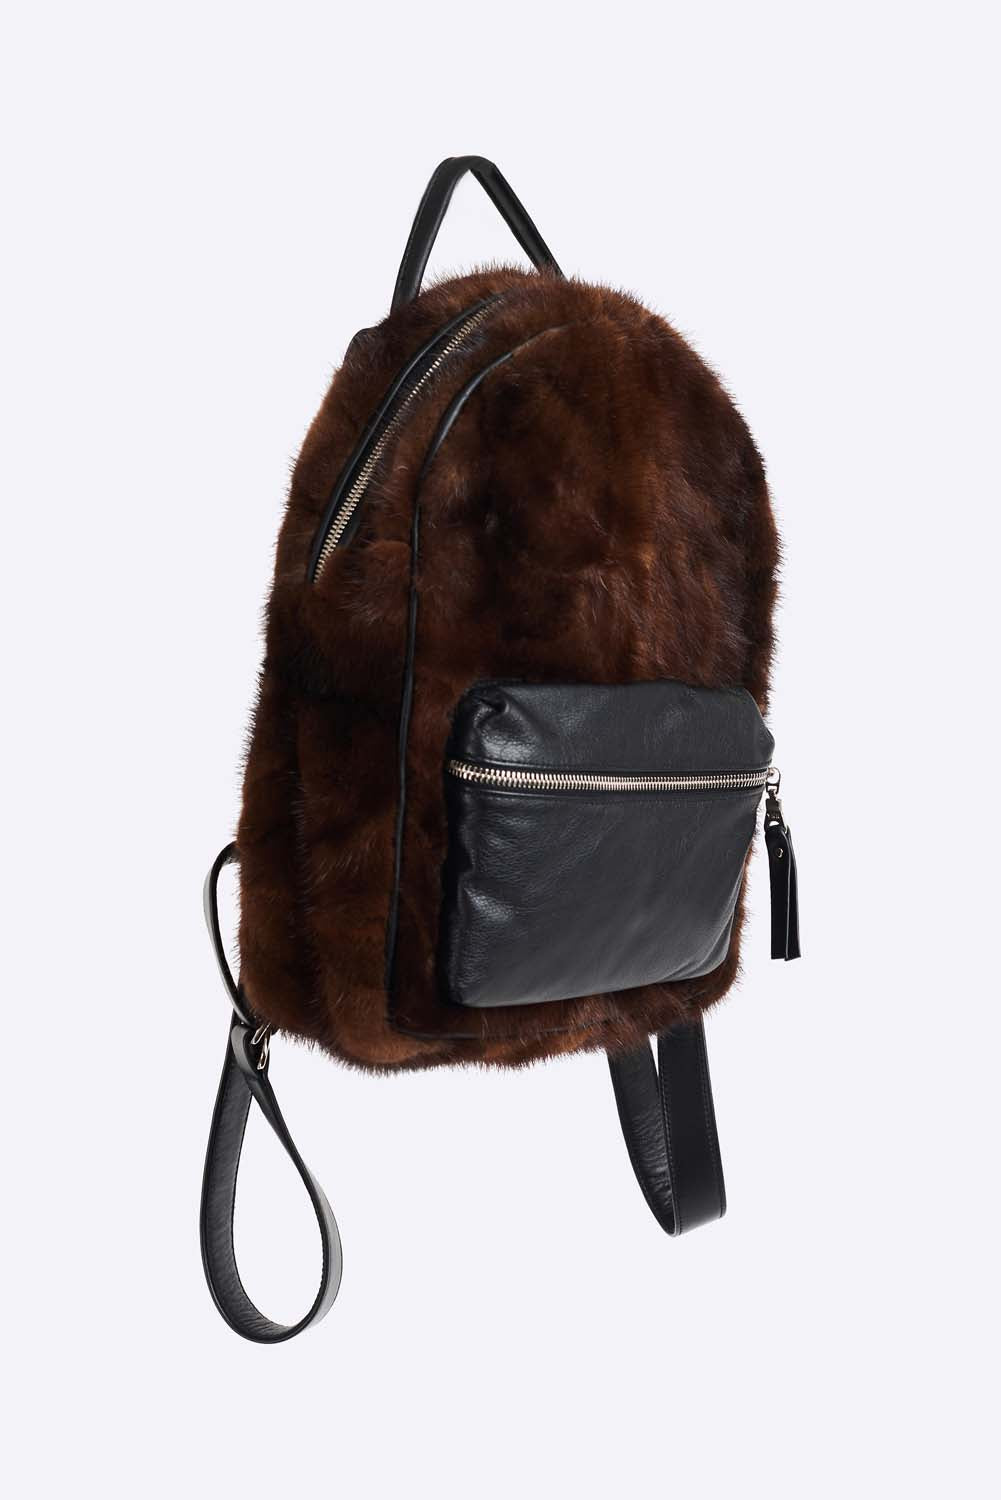 Upcycled mink fur mini backpack. Front leather zip pocket and adjustable backpack straps. Single leather handle and polyester lining. Leather trim and hand polished zipper (Excella). Hand made in Montreal.